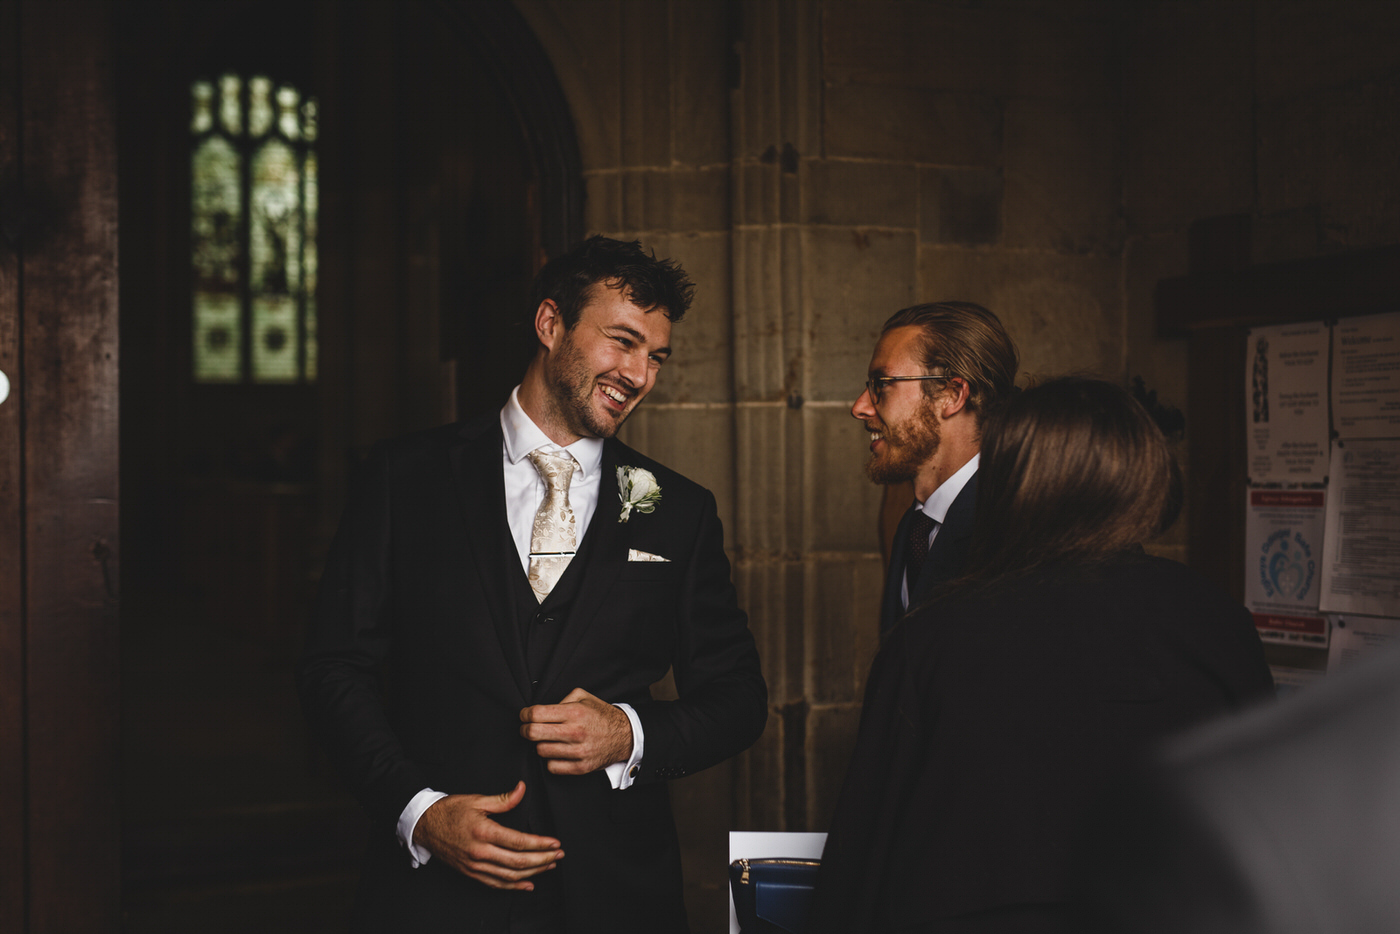 the groom welcomes guests at St Mary's church in mold